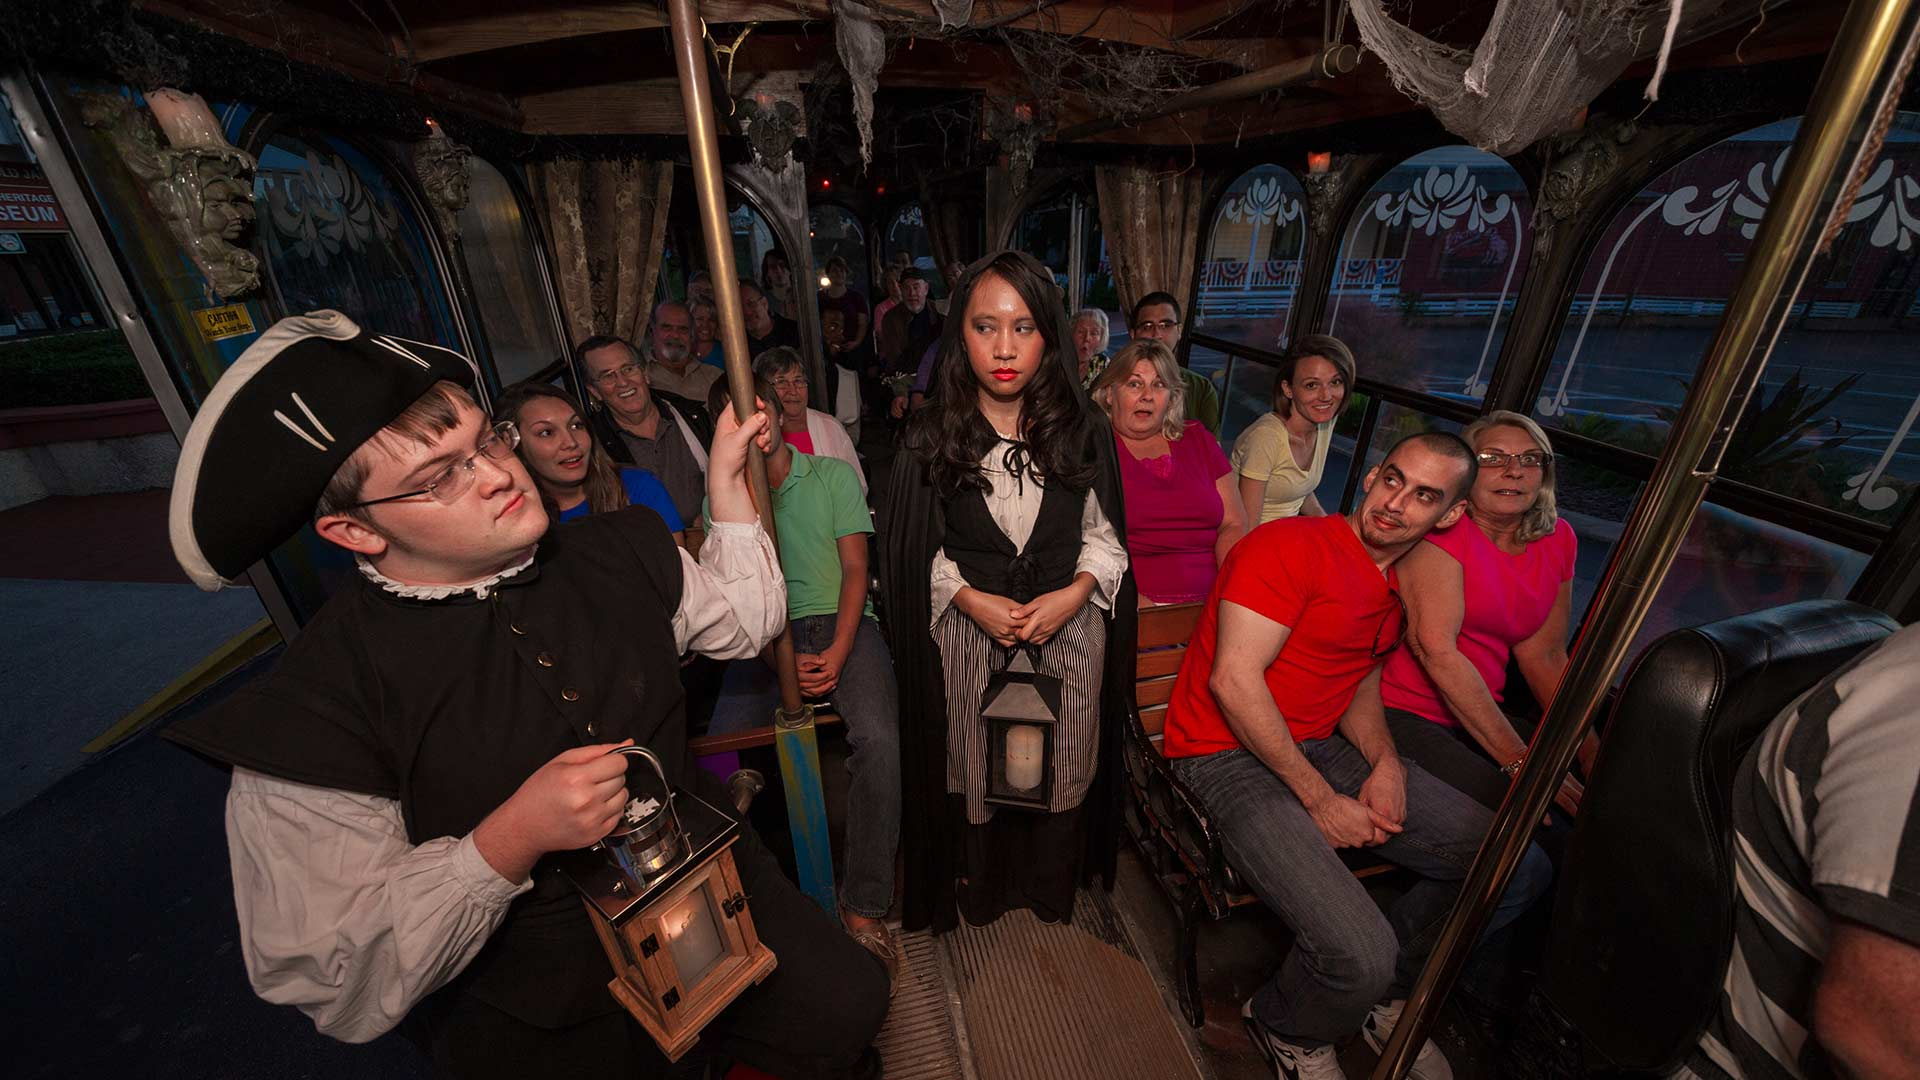 st augustine haunted tour trolley interior with guests inside